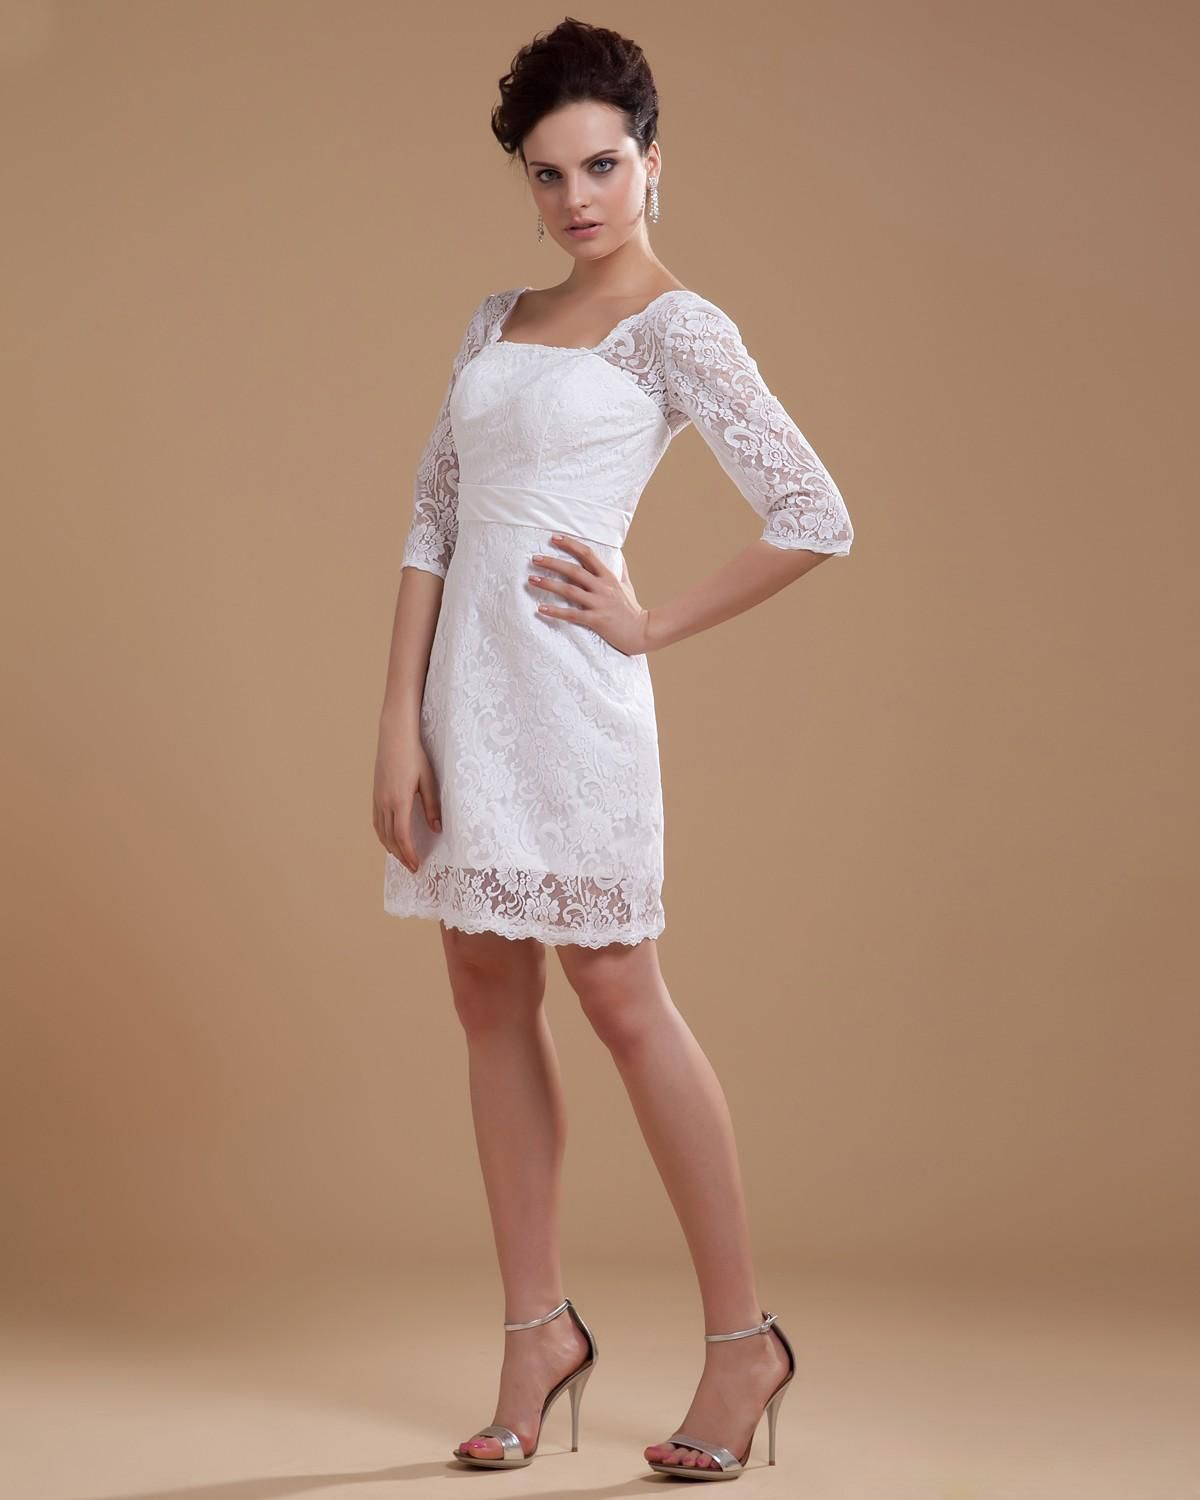 Half sleeve lace square neck short wedding dressstyle nobg